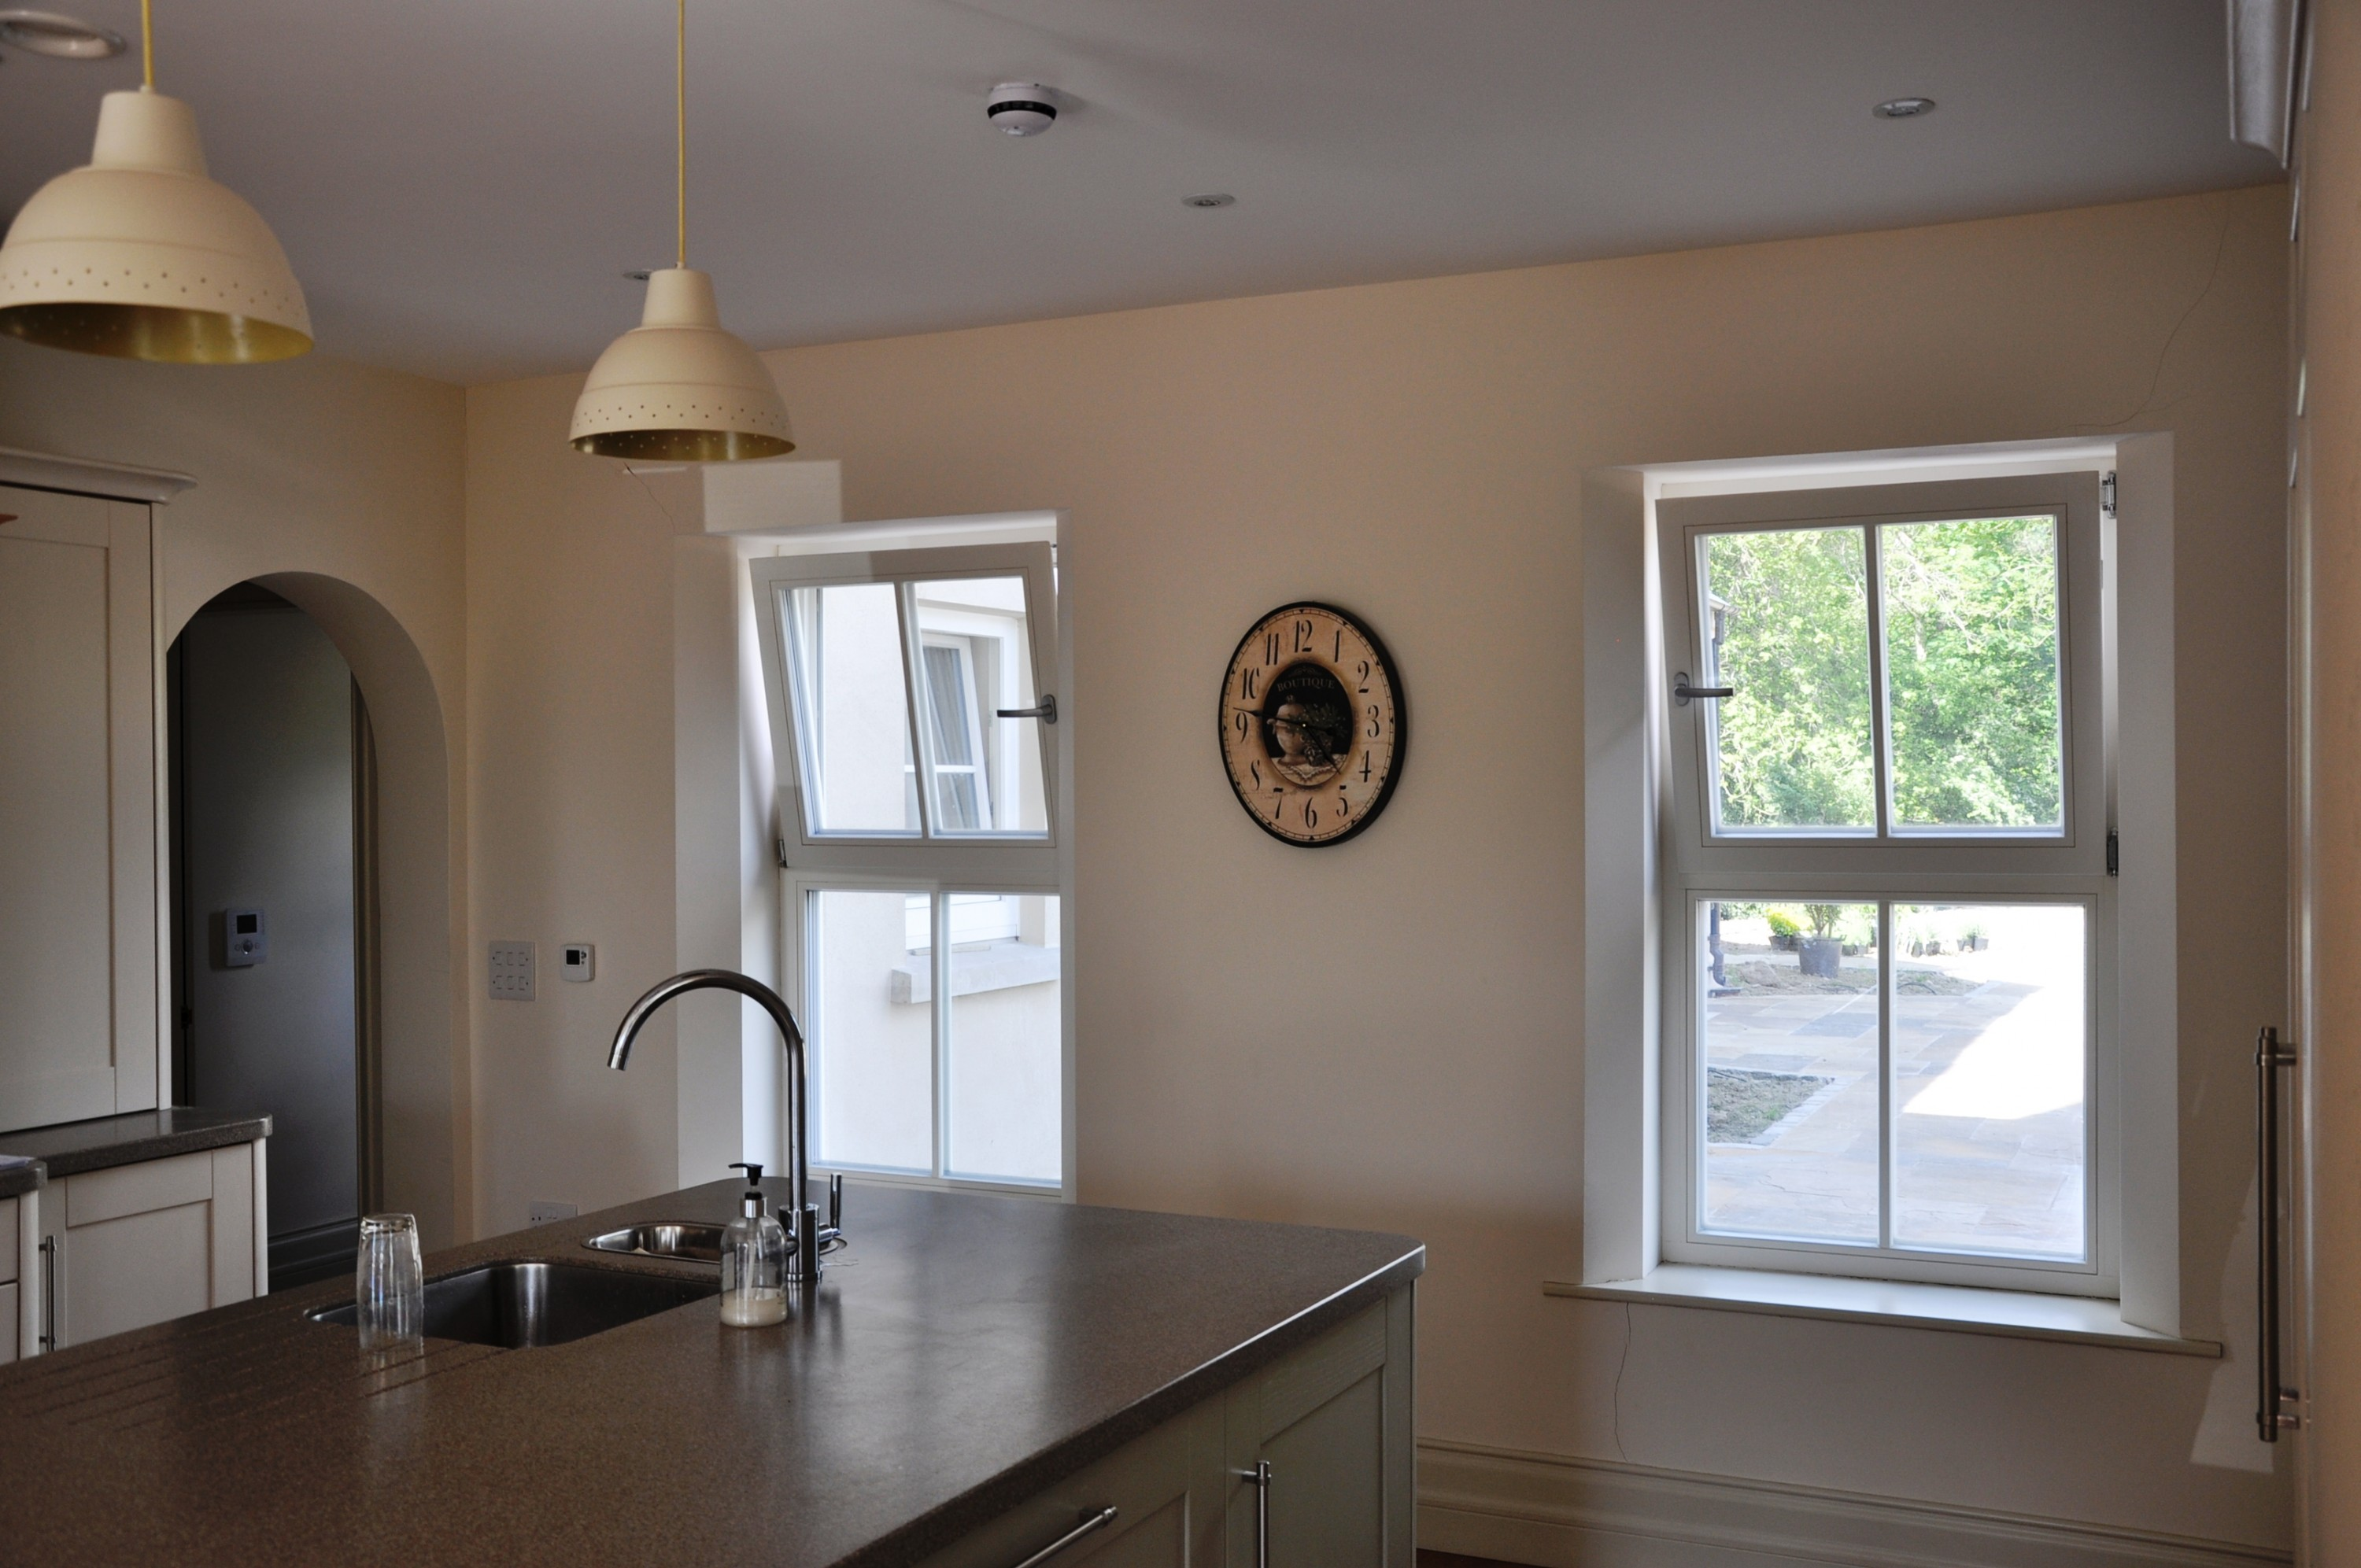 Tilt and turn window style for kitchen